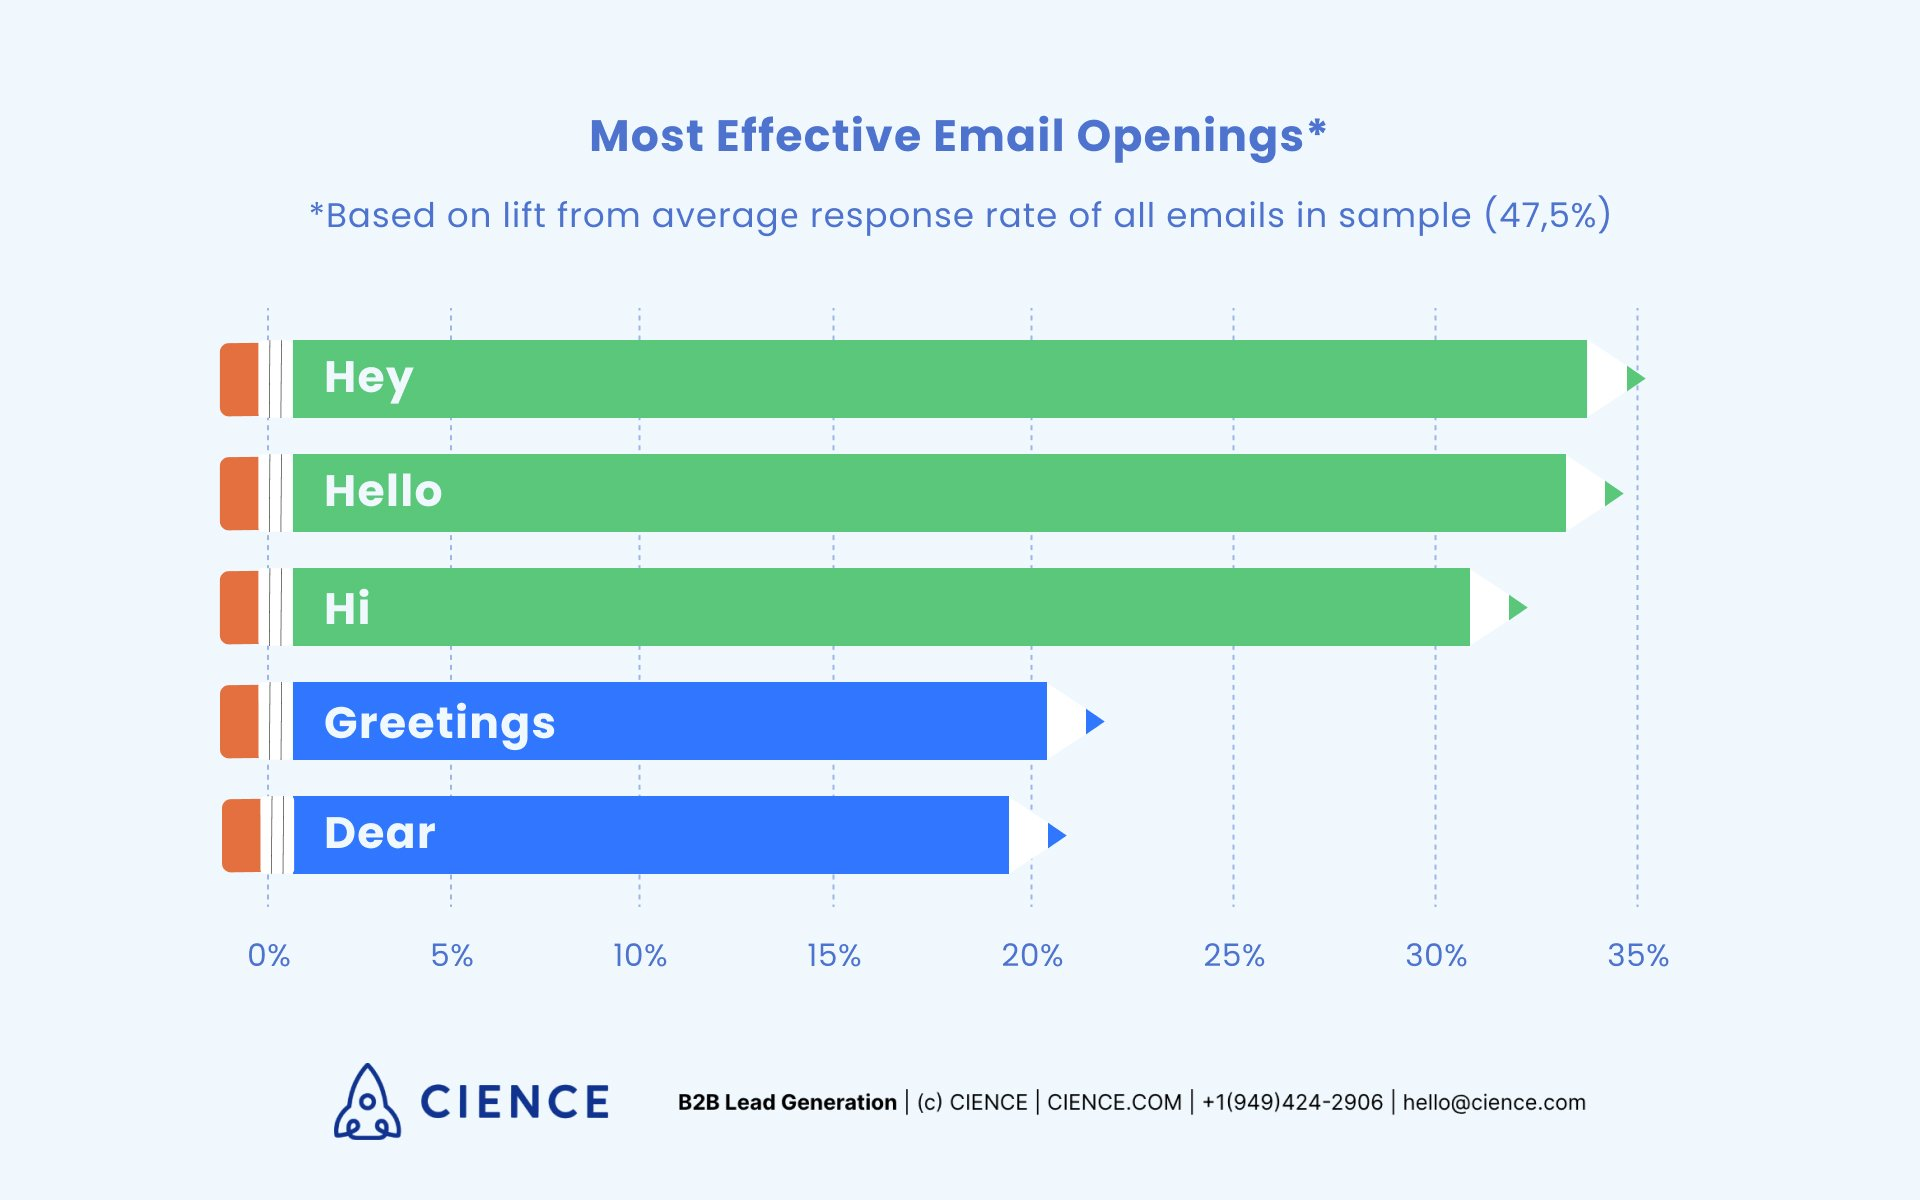 Most effective email openings